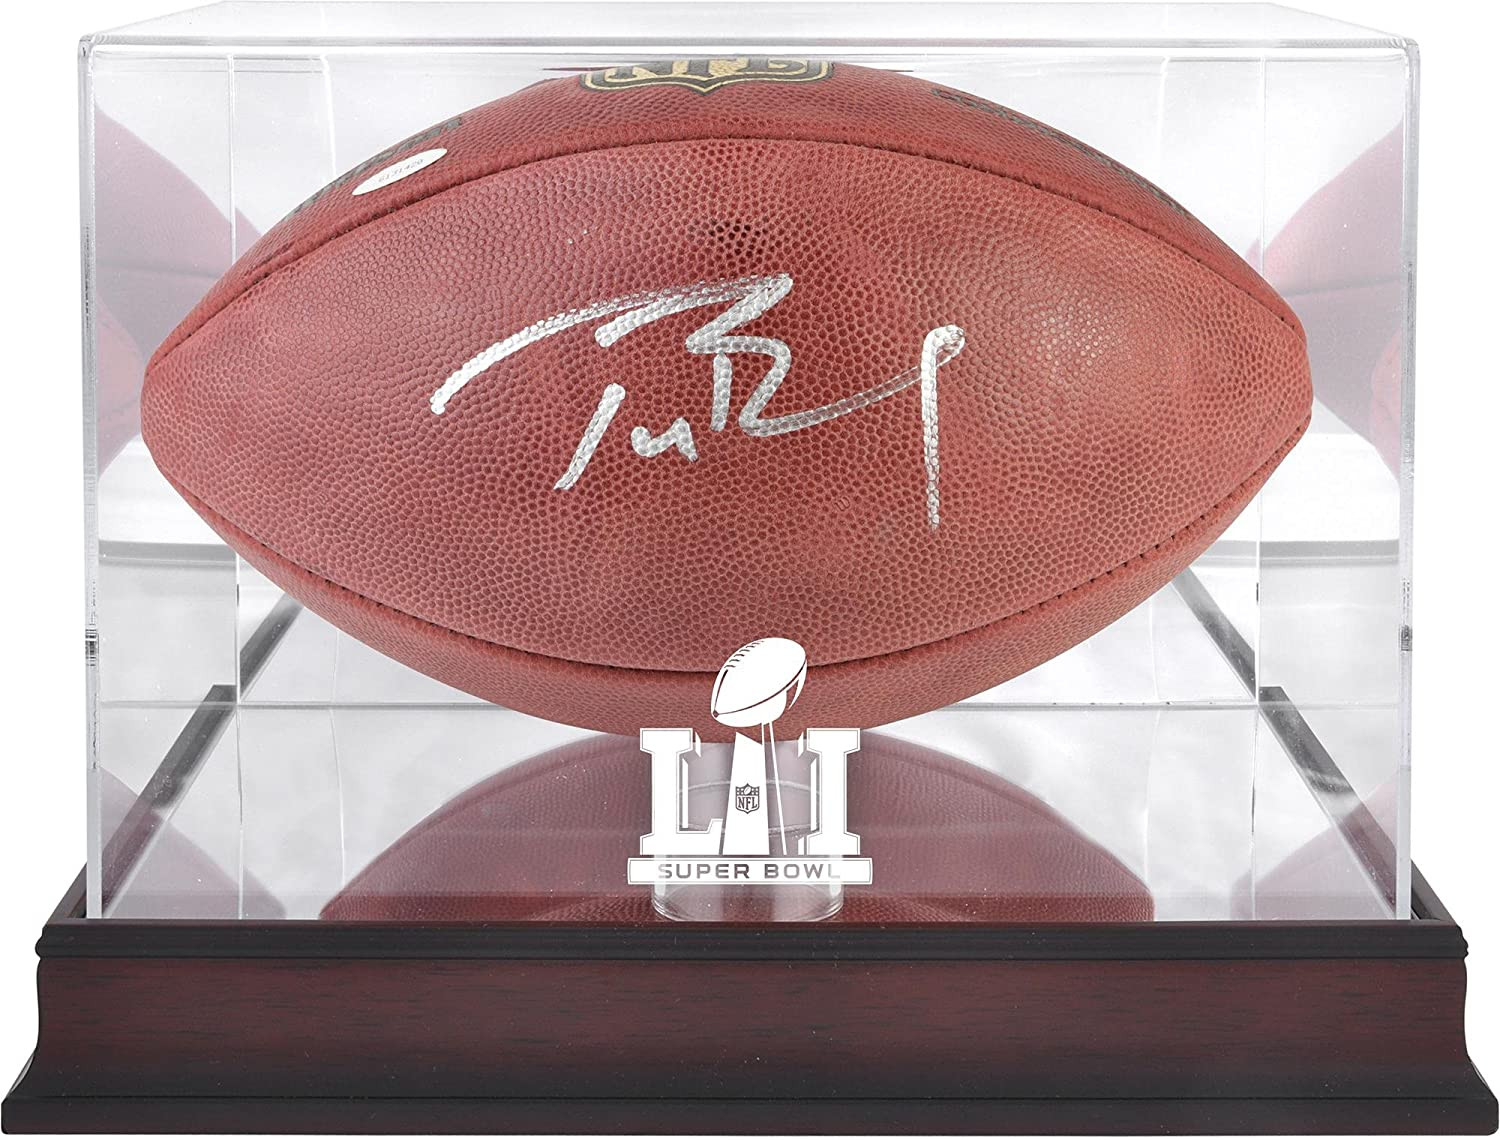 Tom Brady New England Patriots Autographed Duke Football with Mahogany Base Super Bowl LI Football Display Case - TRISTAR - Fanatics Authentic Certified